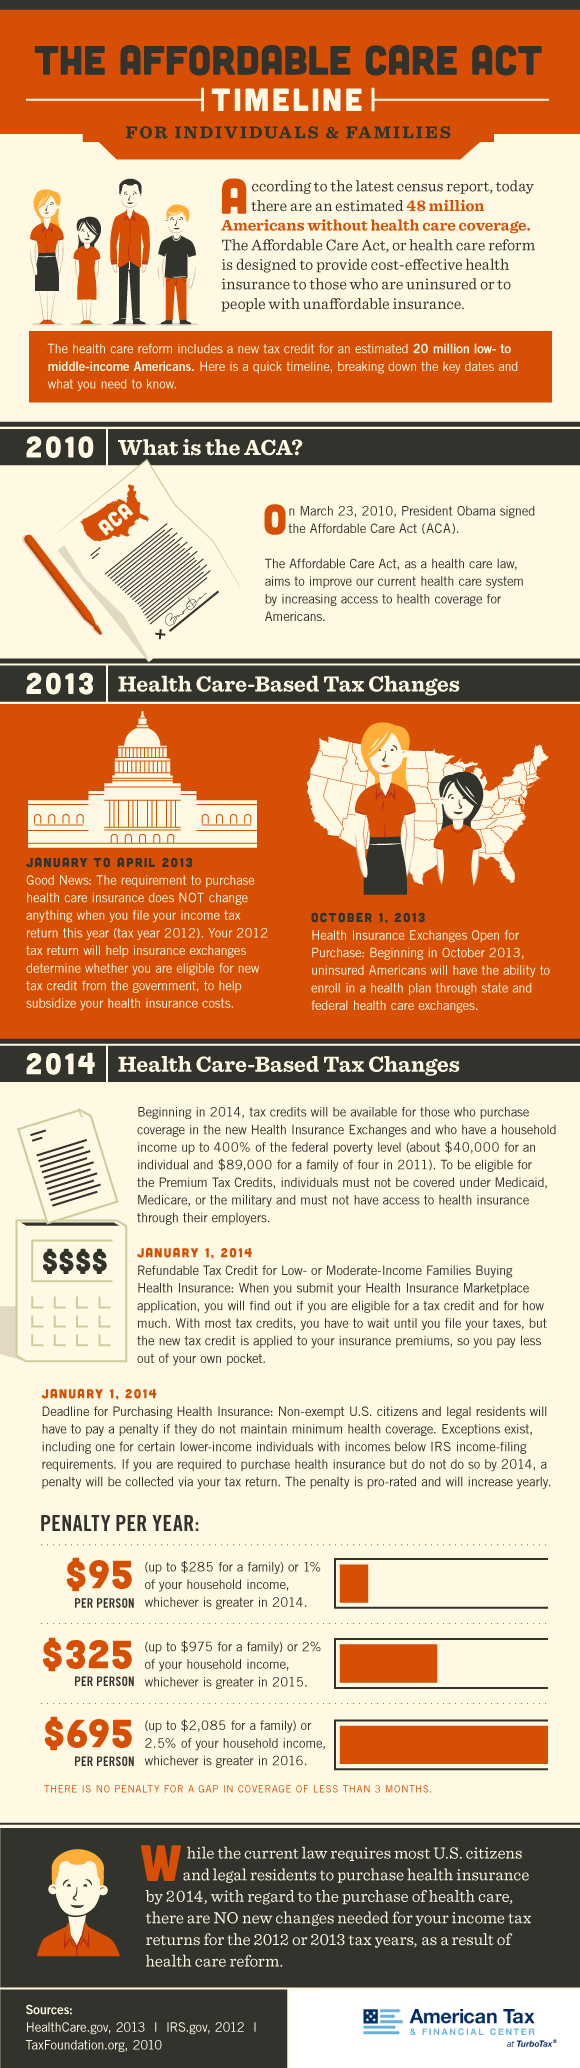 Health Insurance Savings Tips You Might Not See Some Of These Time Tested Suggestions Often